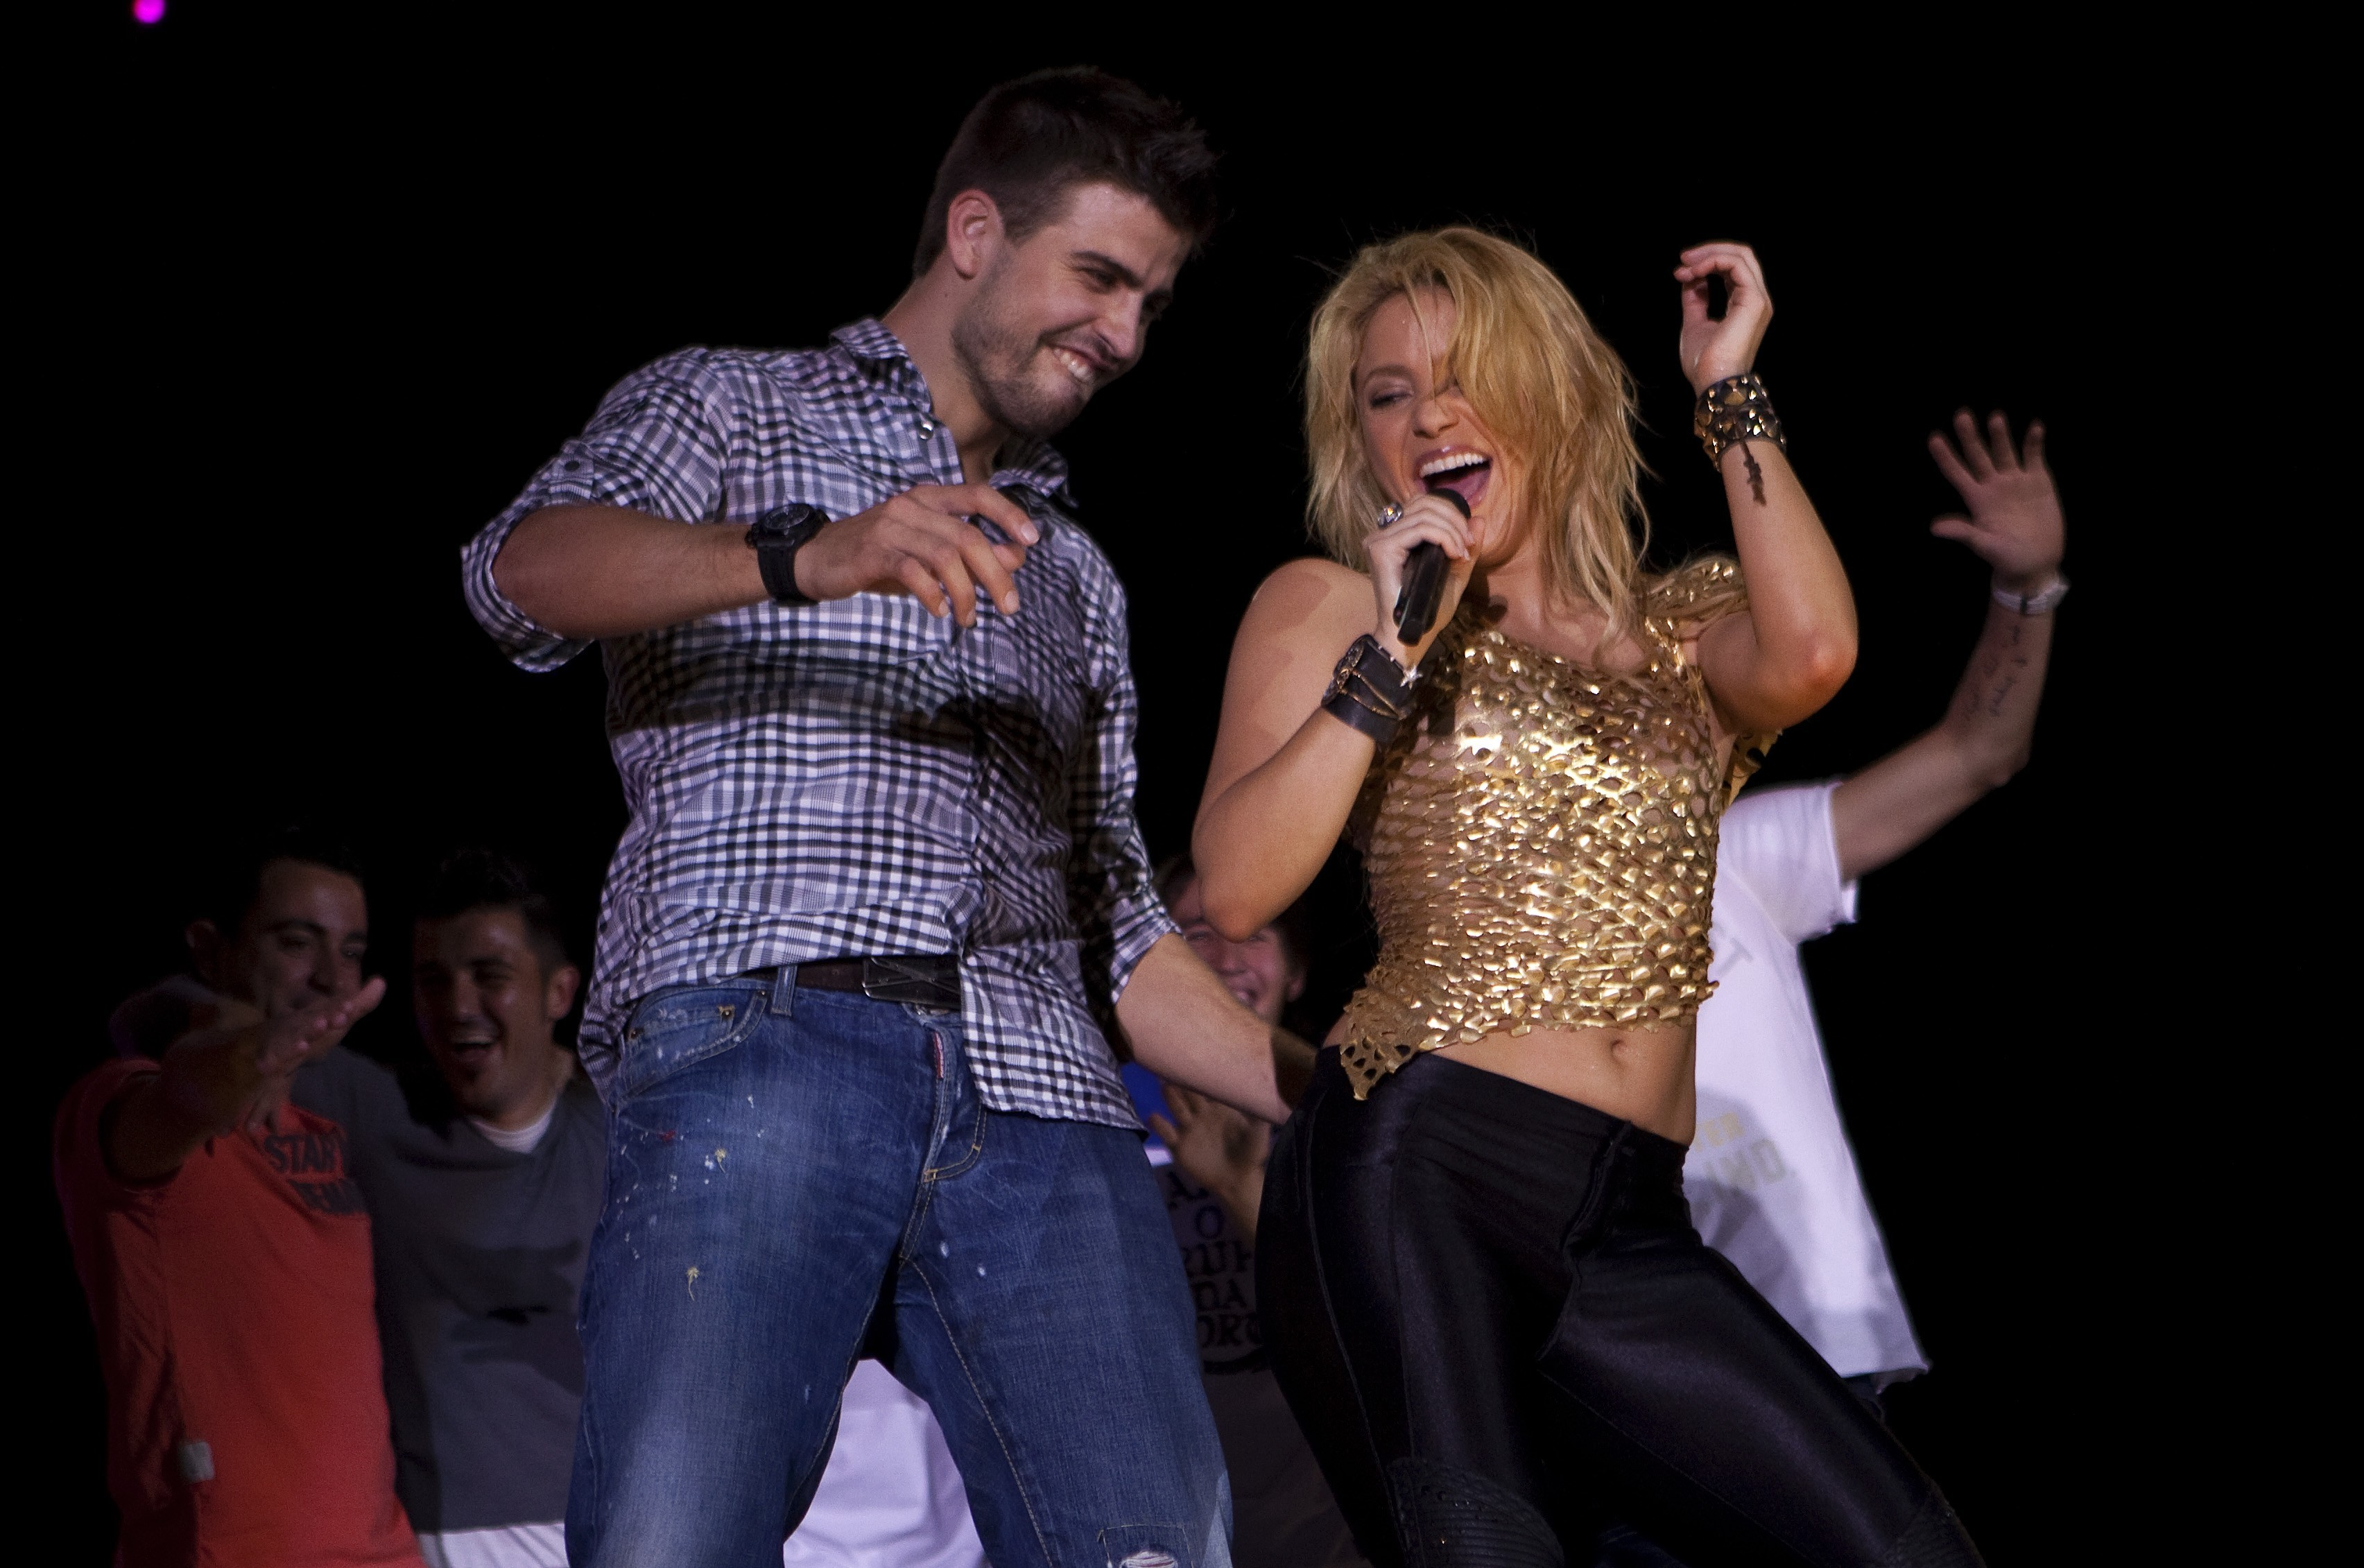 Gerard Pique Explains How To Pull A Girl Like Shakira TheSPORTbible